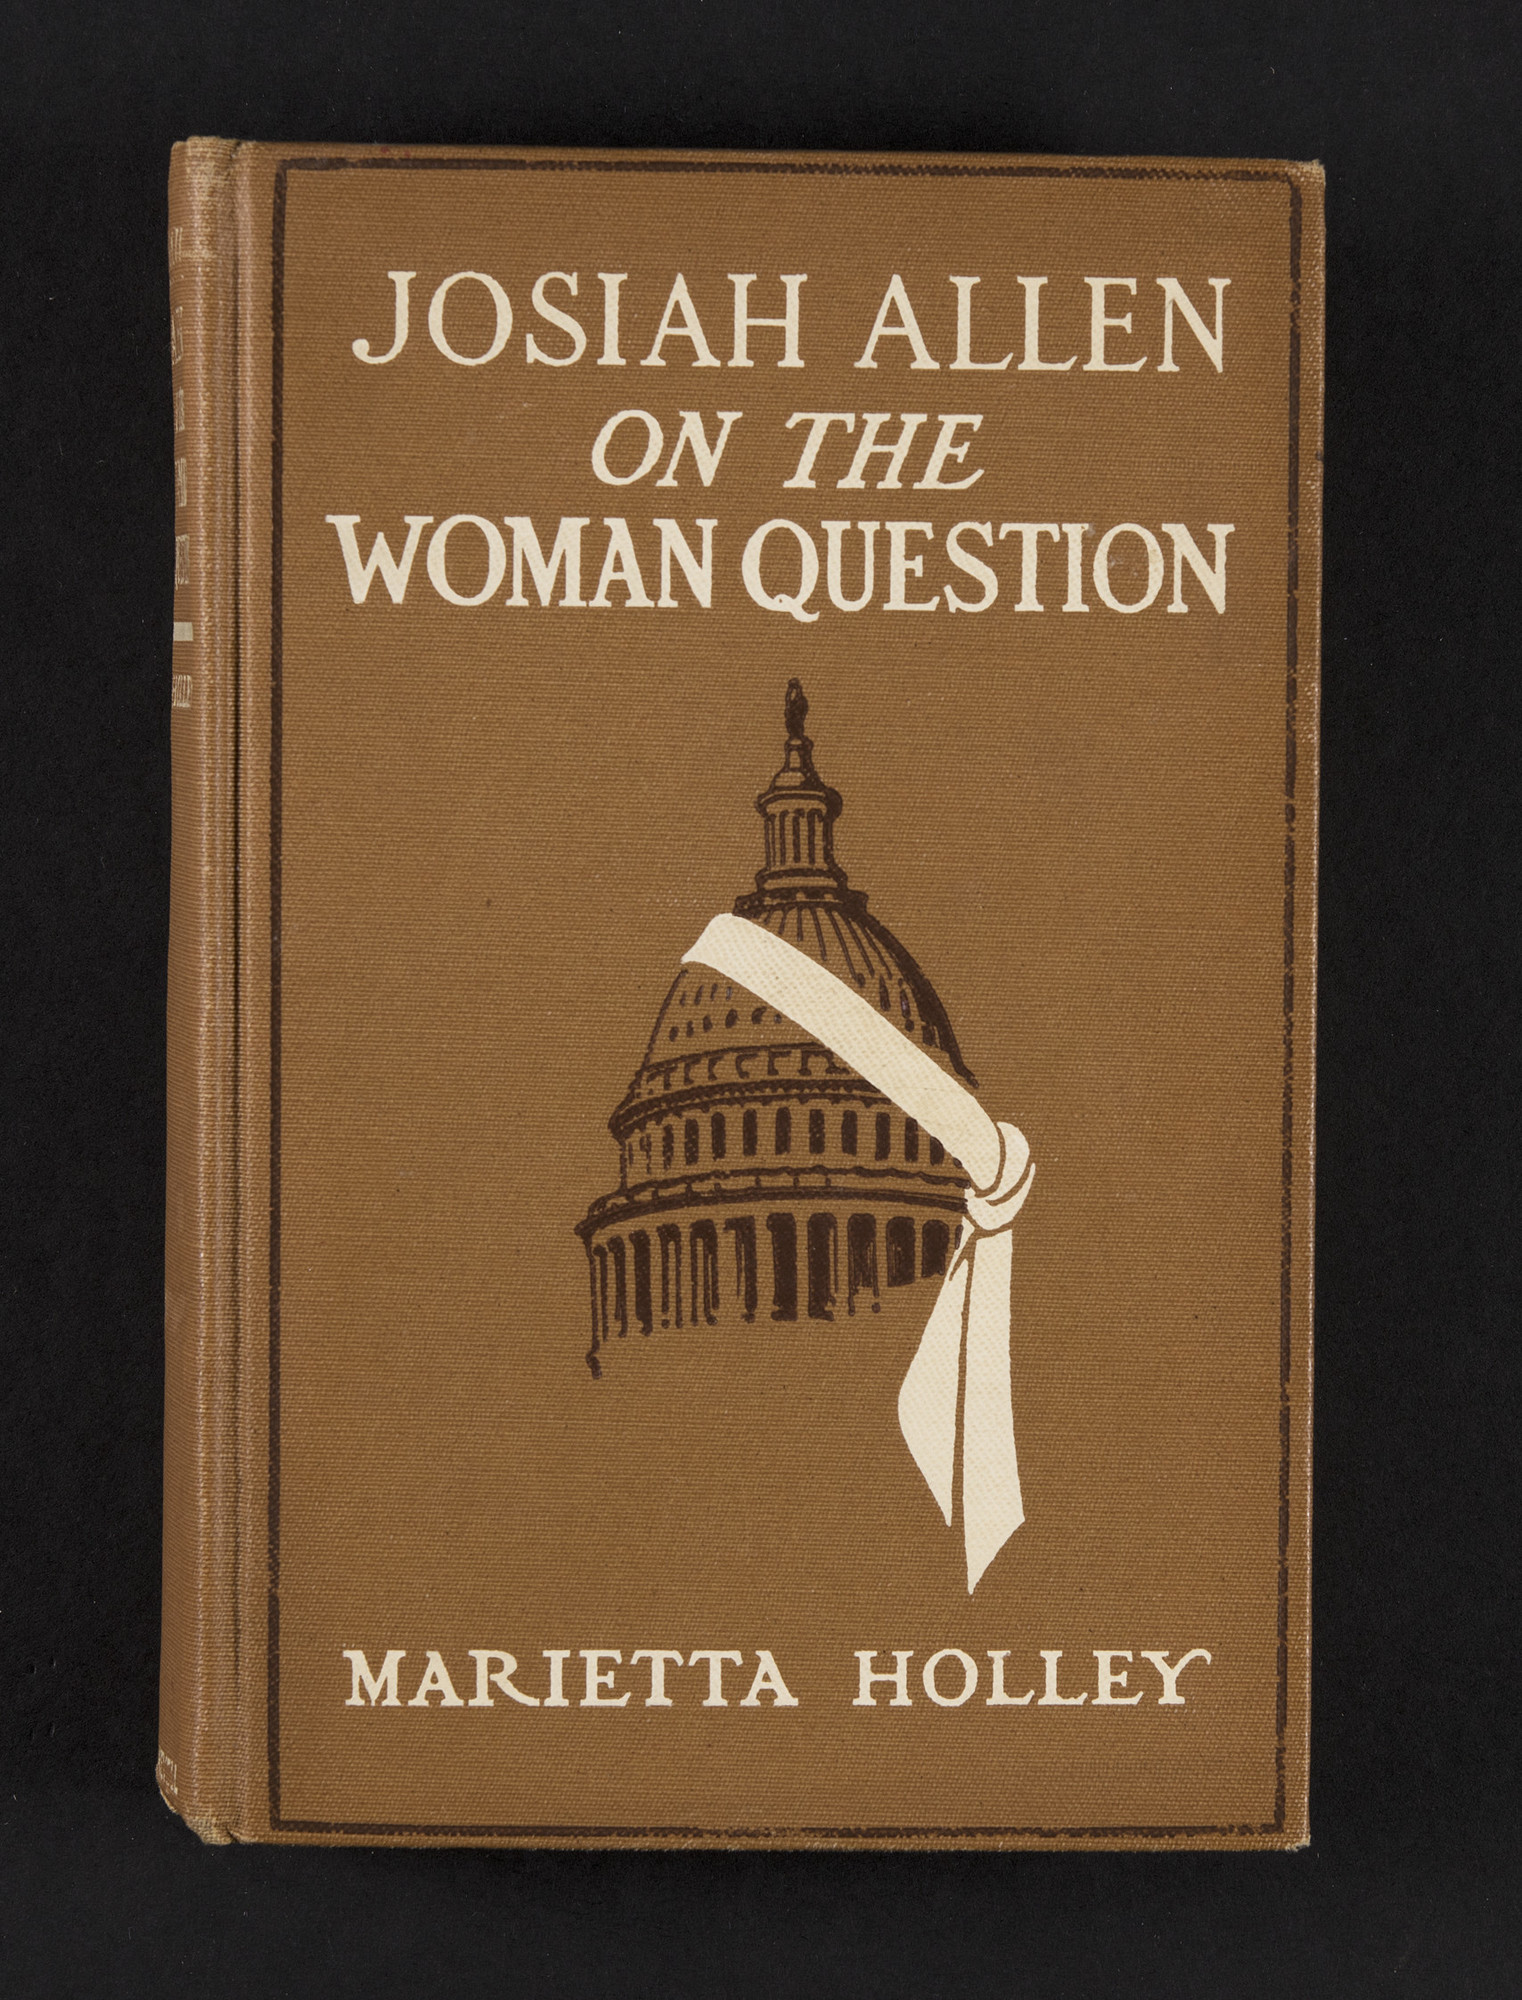 <b><i>Josiah Allen on the Woman Question </i></b><b>by Marietta Holley, 1914</b>